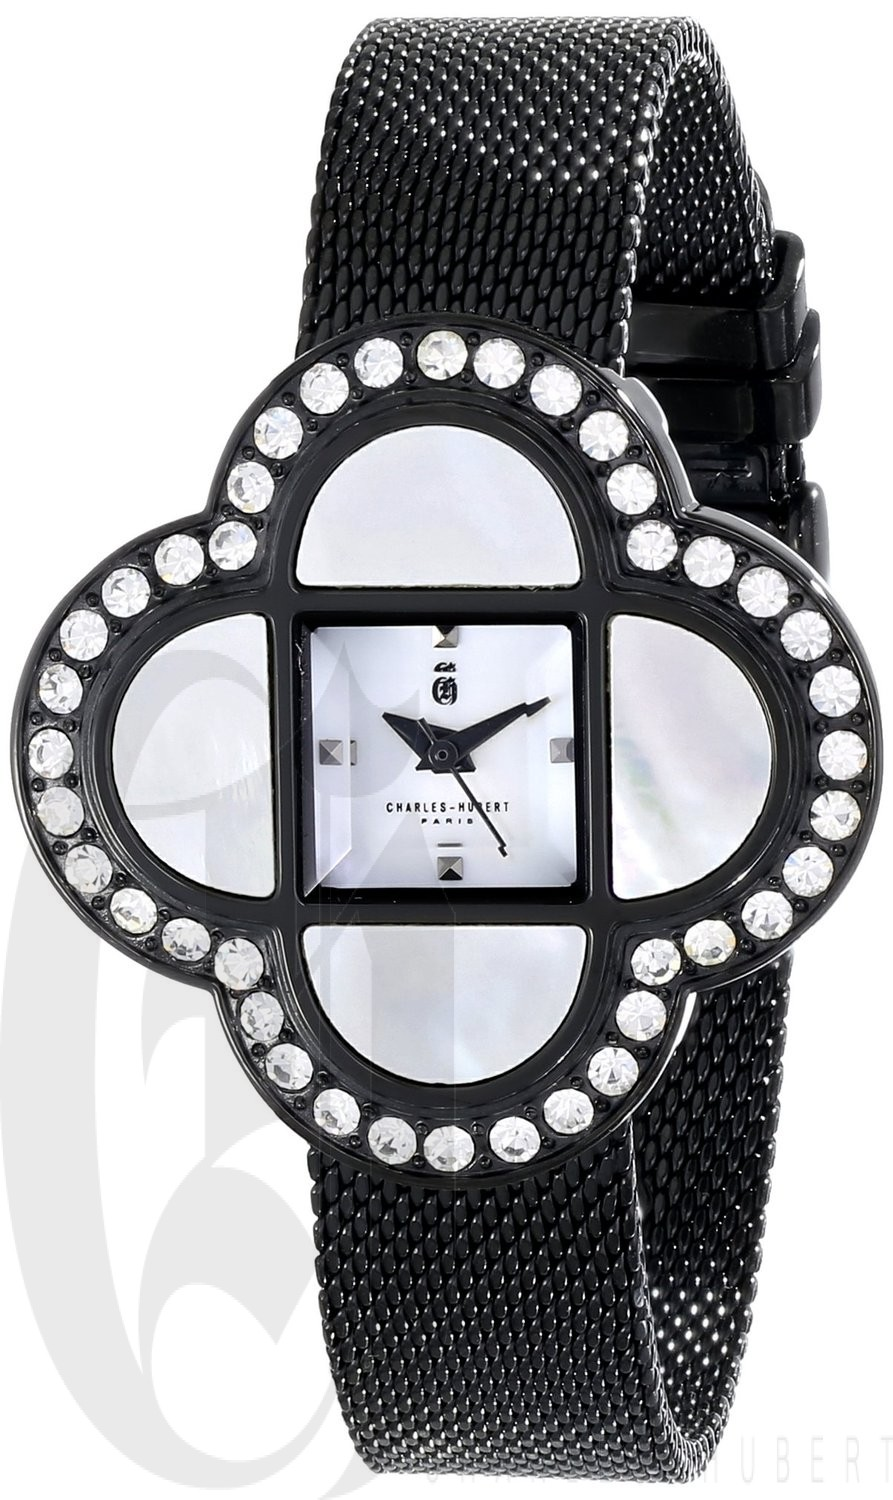 Charles-Hubert Paris Women's Black Plated Stainless Steel Quartz Watch